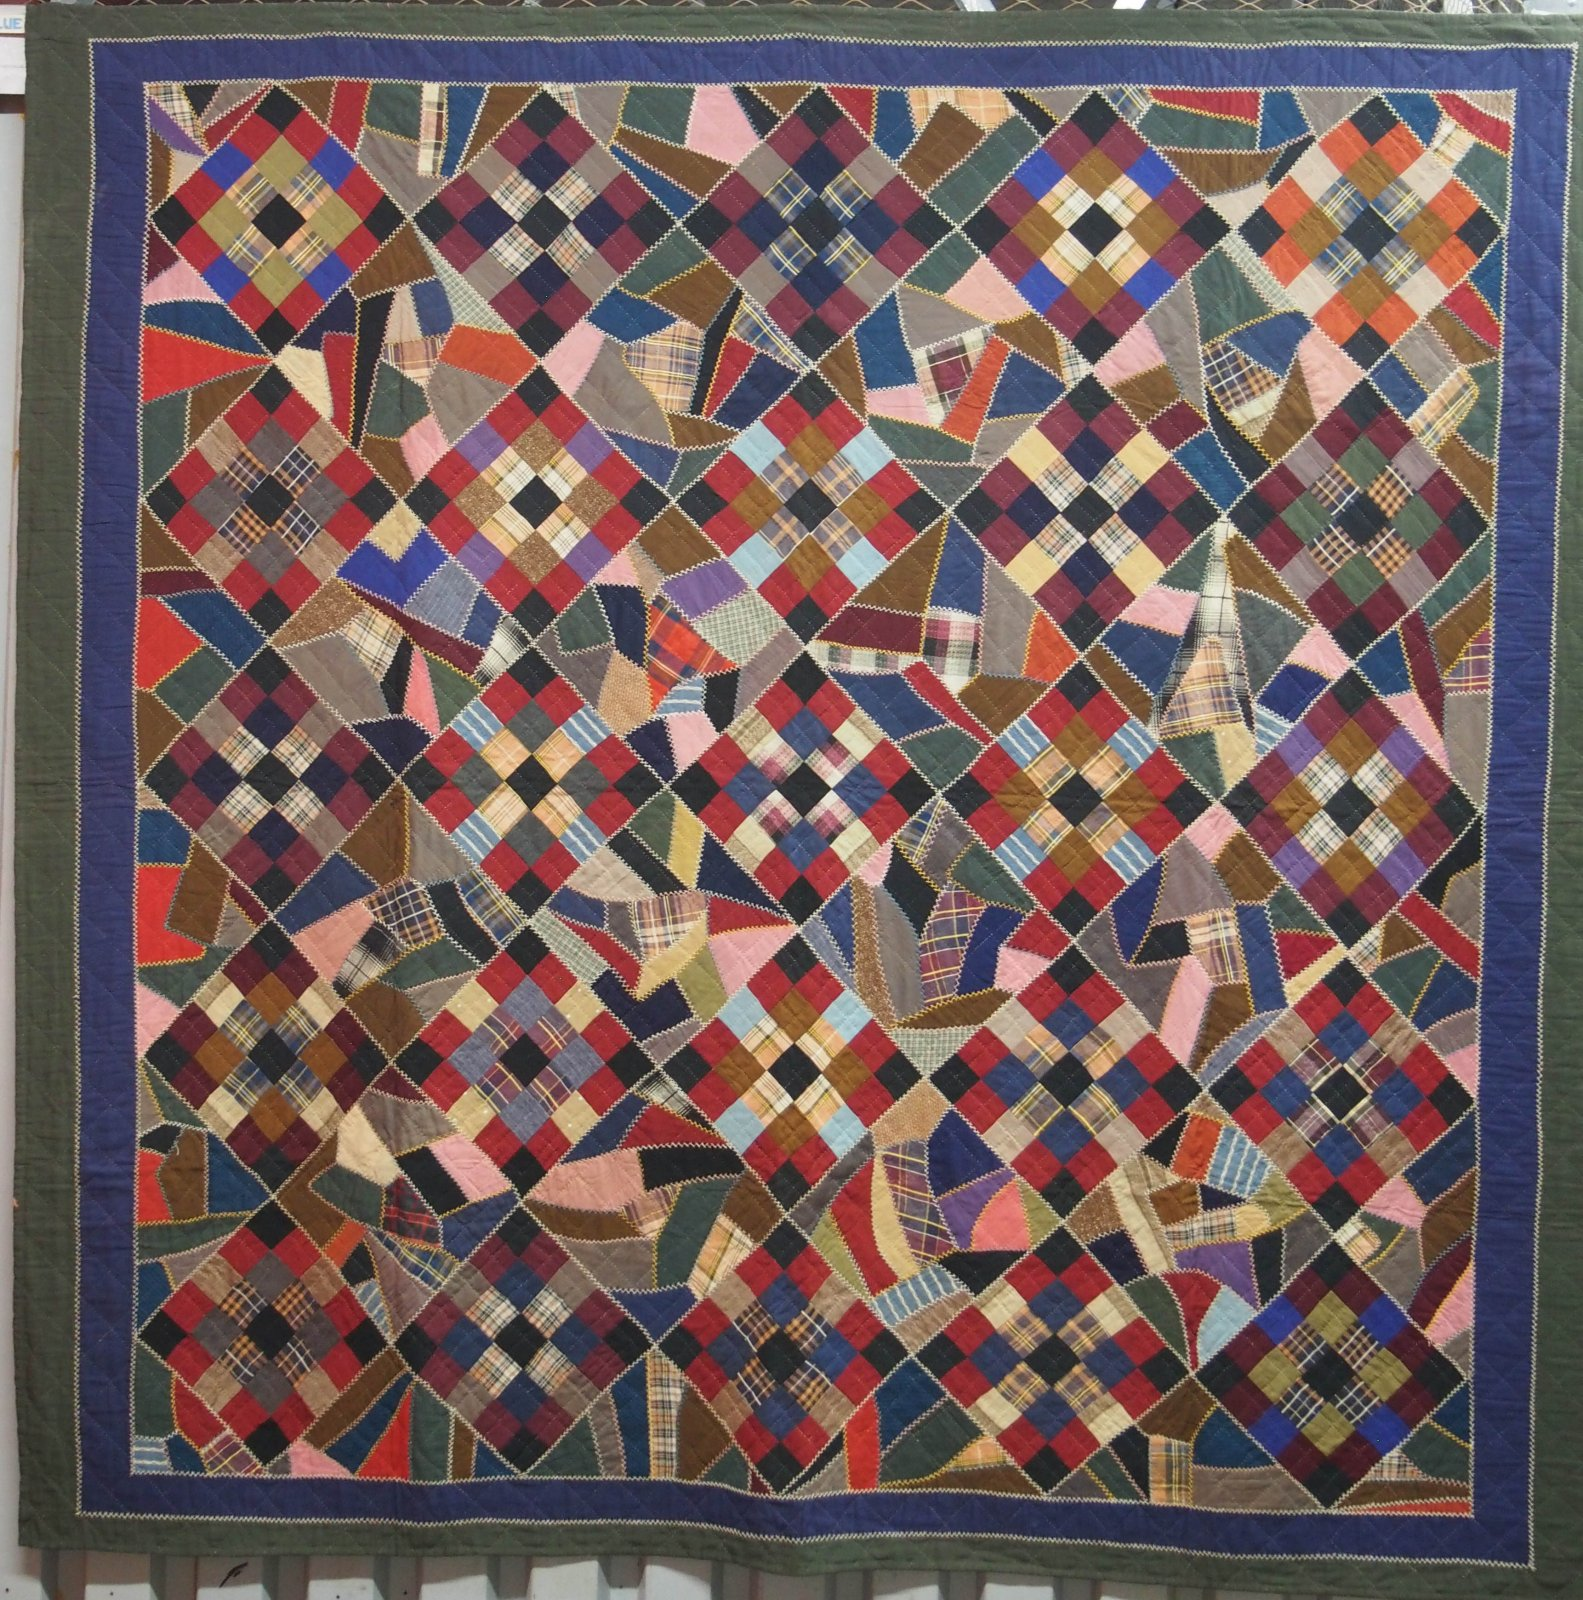 CRAZY AND NINE PATCH VARIATION ANTIQUE WOOL QUILT